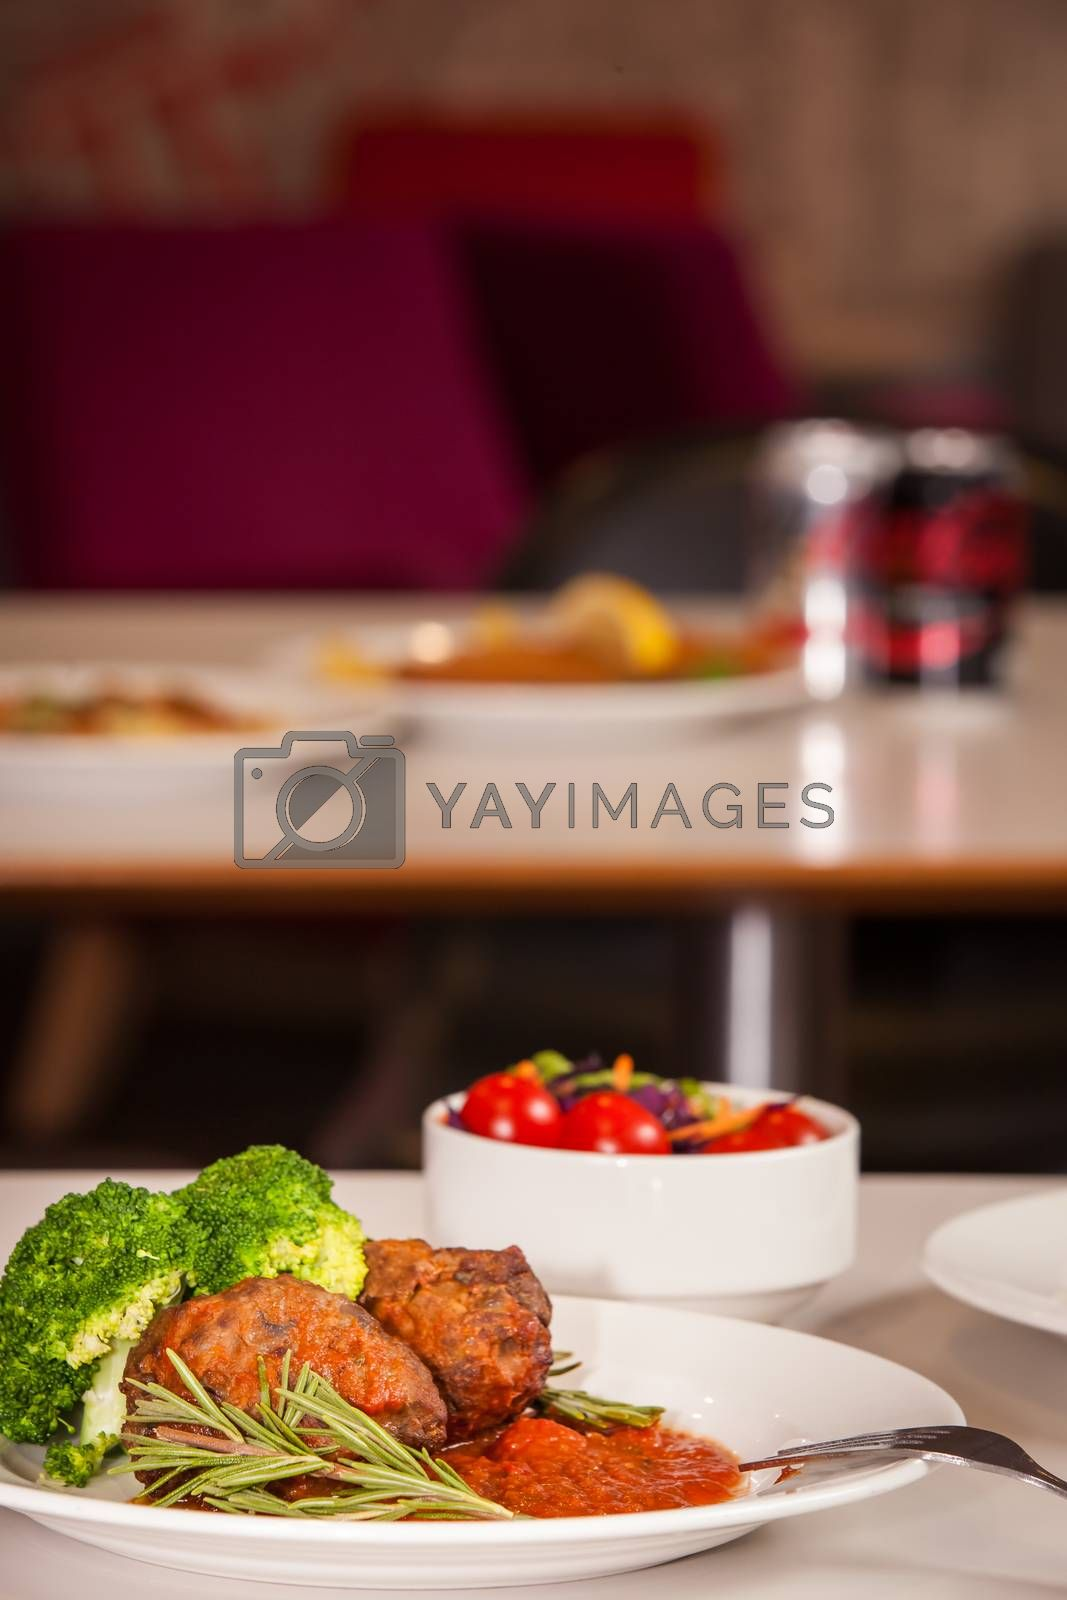 Meatballs with tomato sauce served with broccoli and side salad